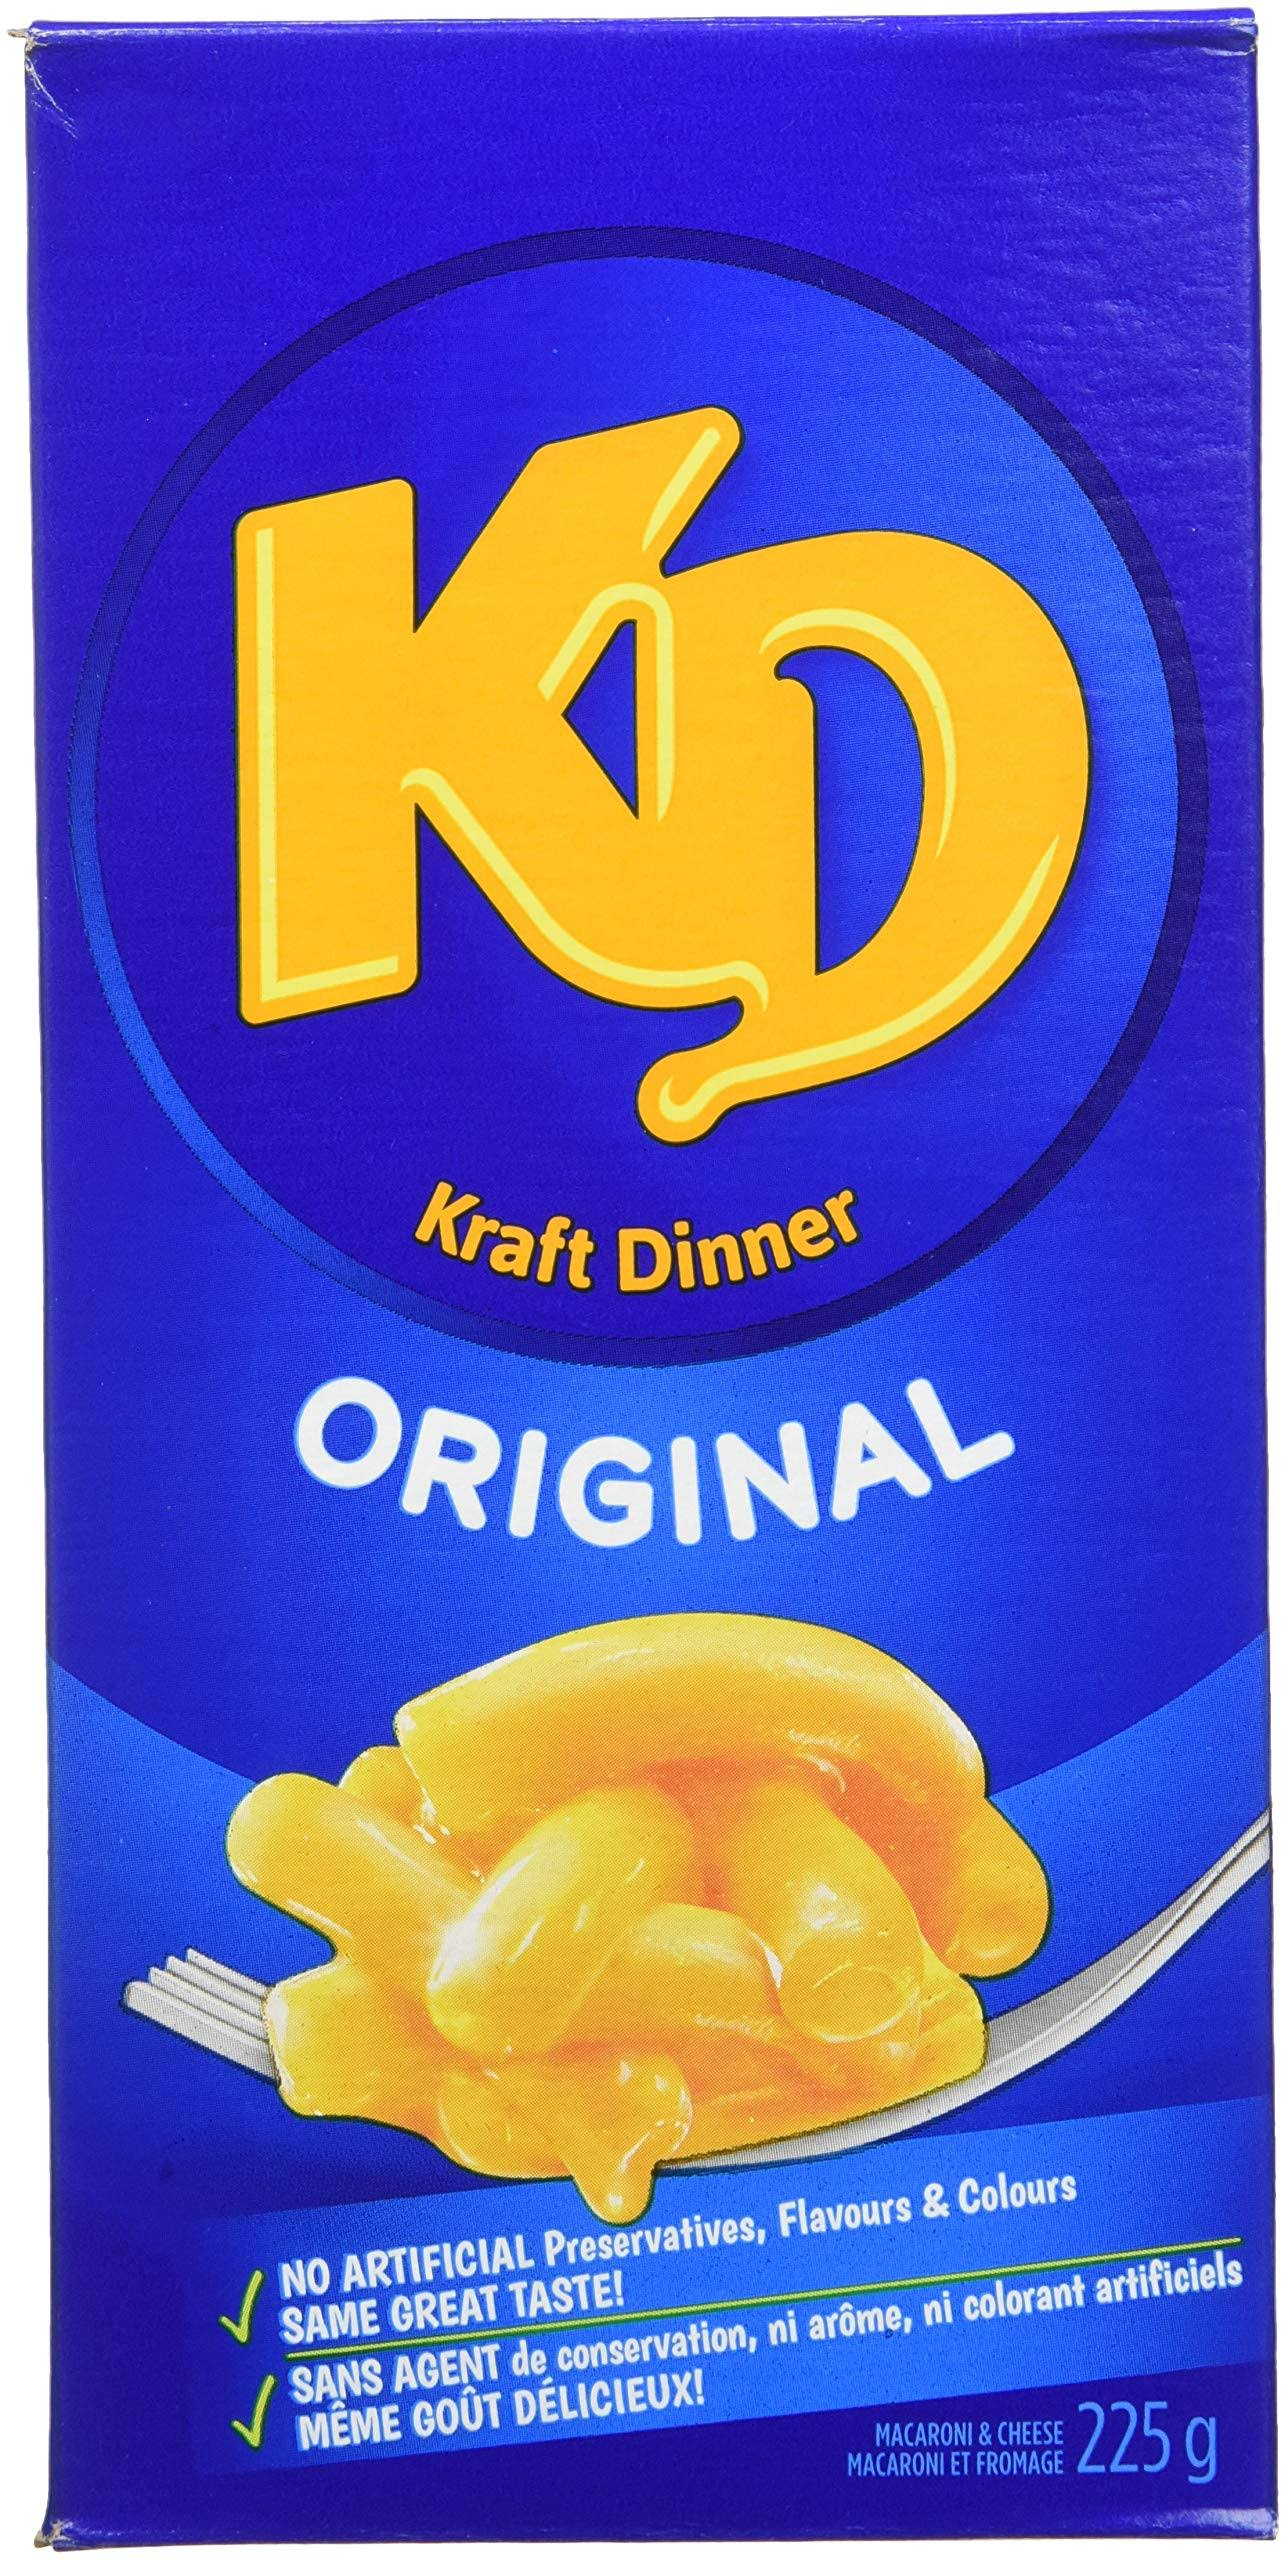 Kraft Dinner Original Macaroni & Cheese - 225g, 12pk